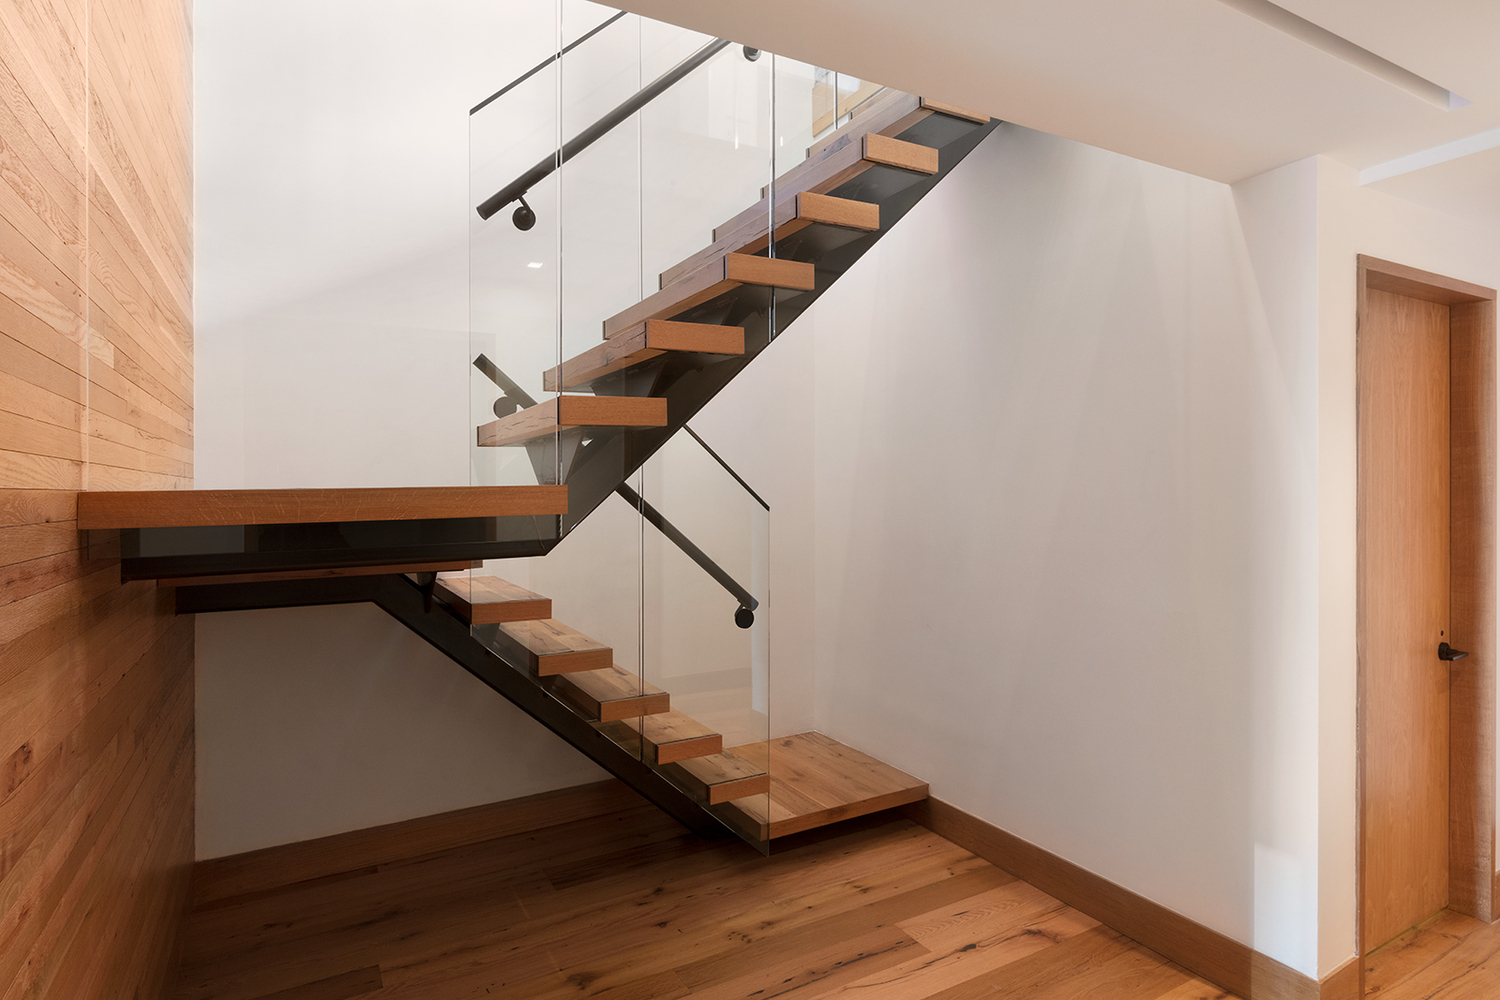 Wooden staircase with glass railing inside a luxury apartment featuring MEP work done by New York firm, 2L Engineering.